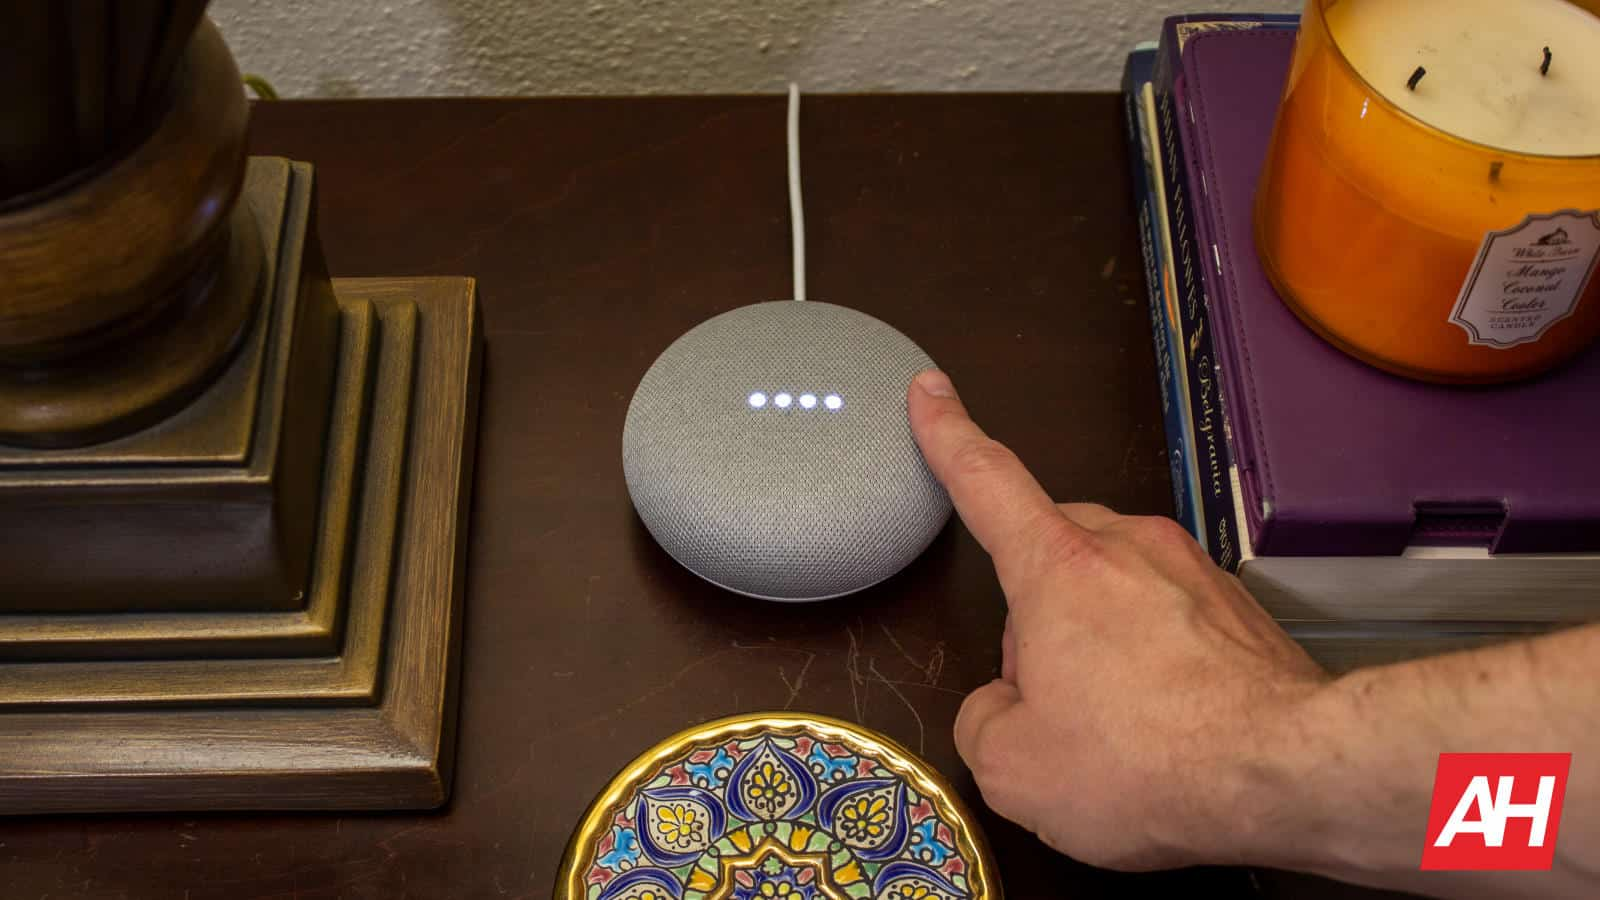 Google Home AH NS 08 Mini